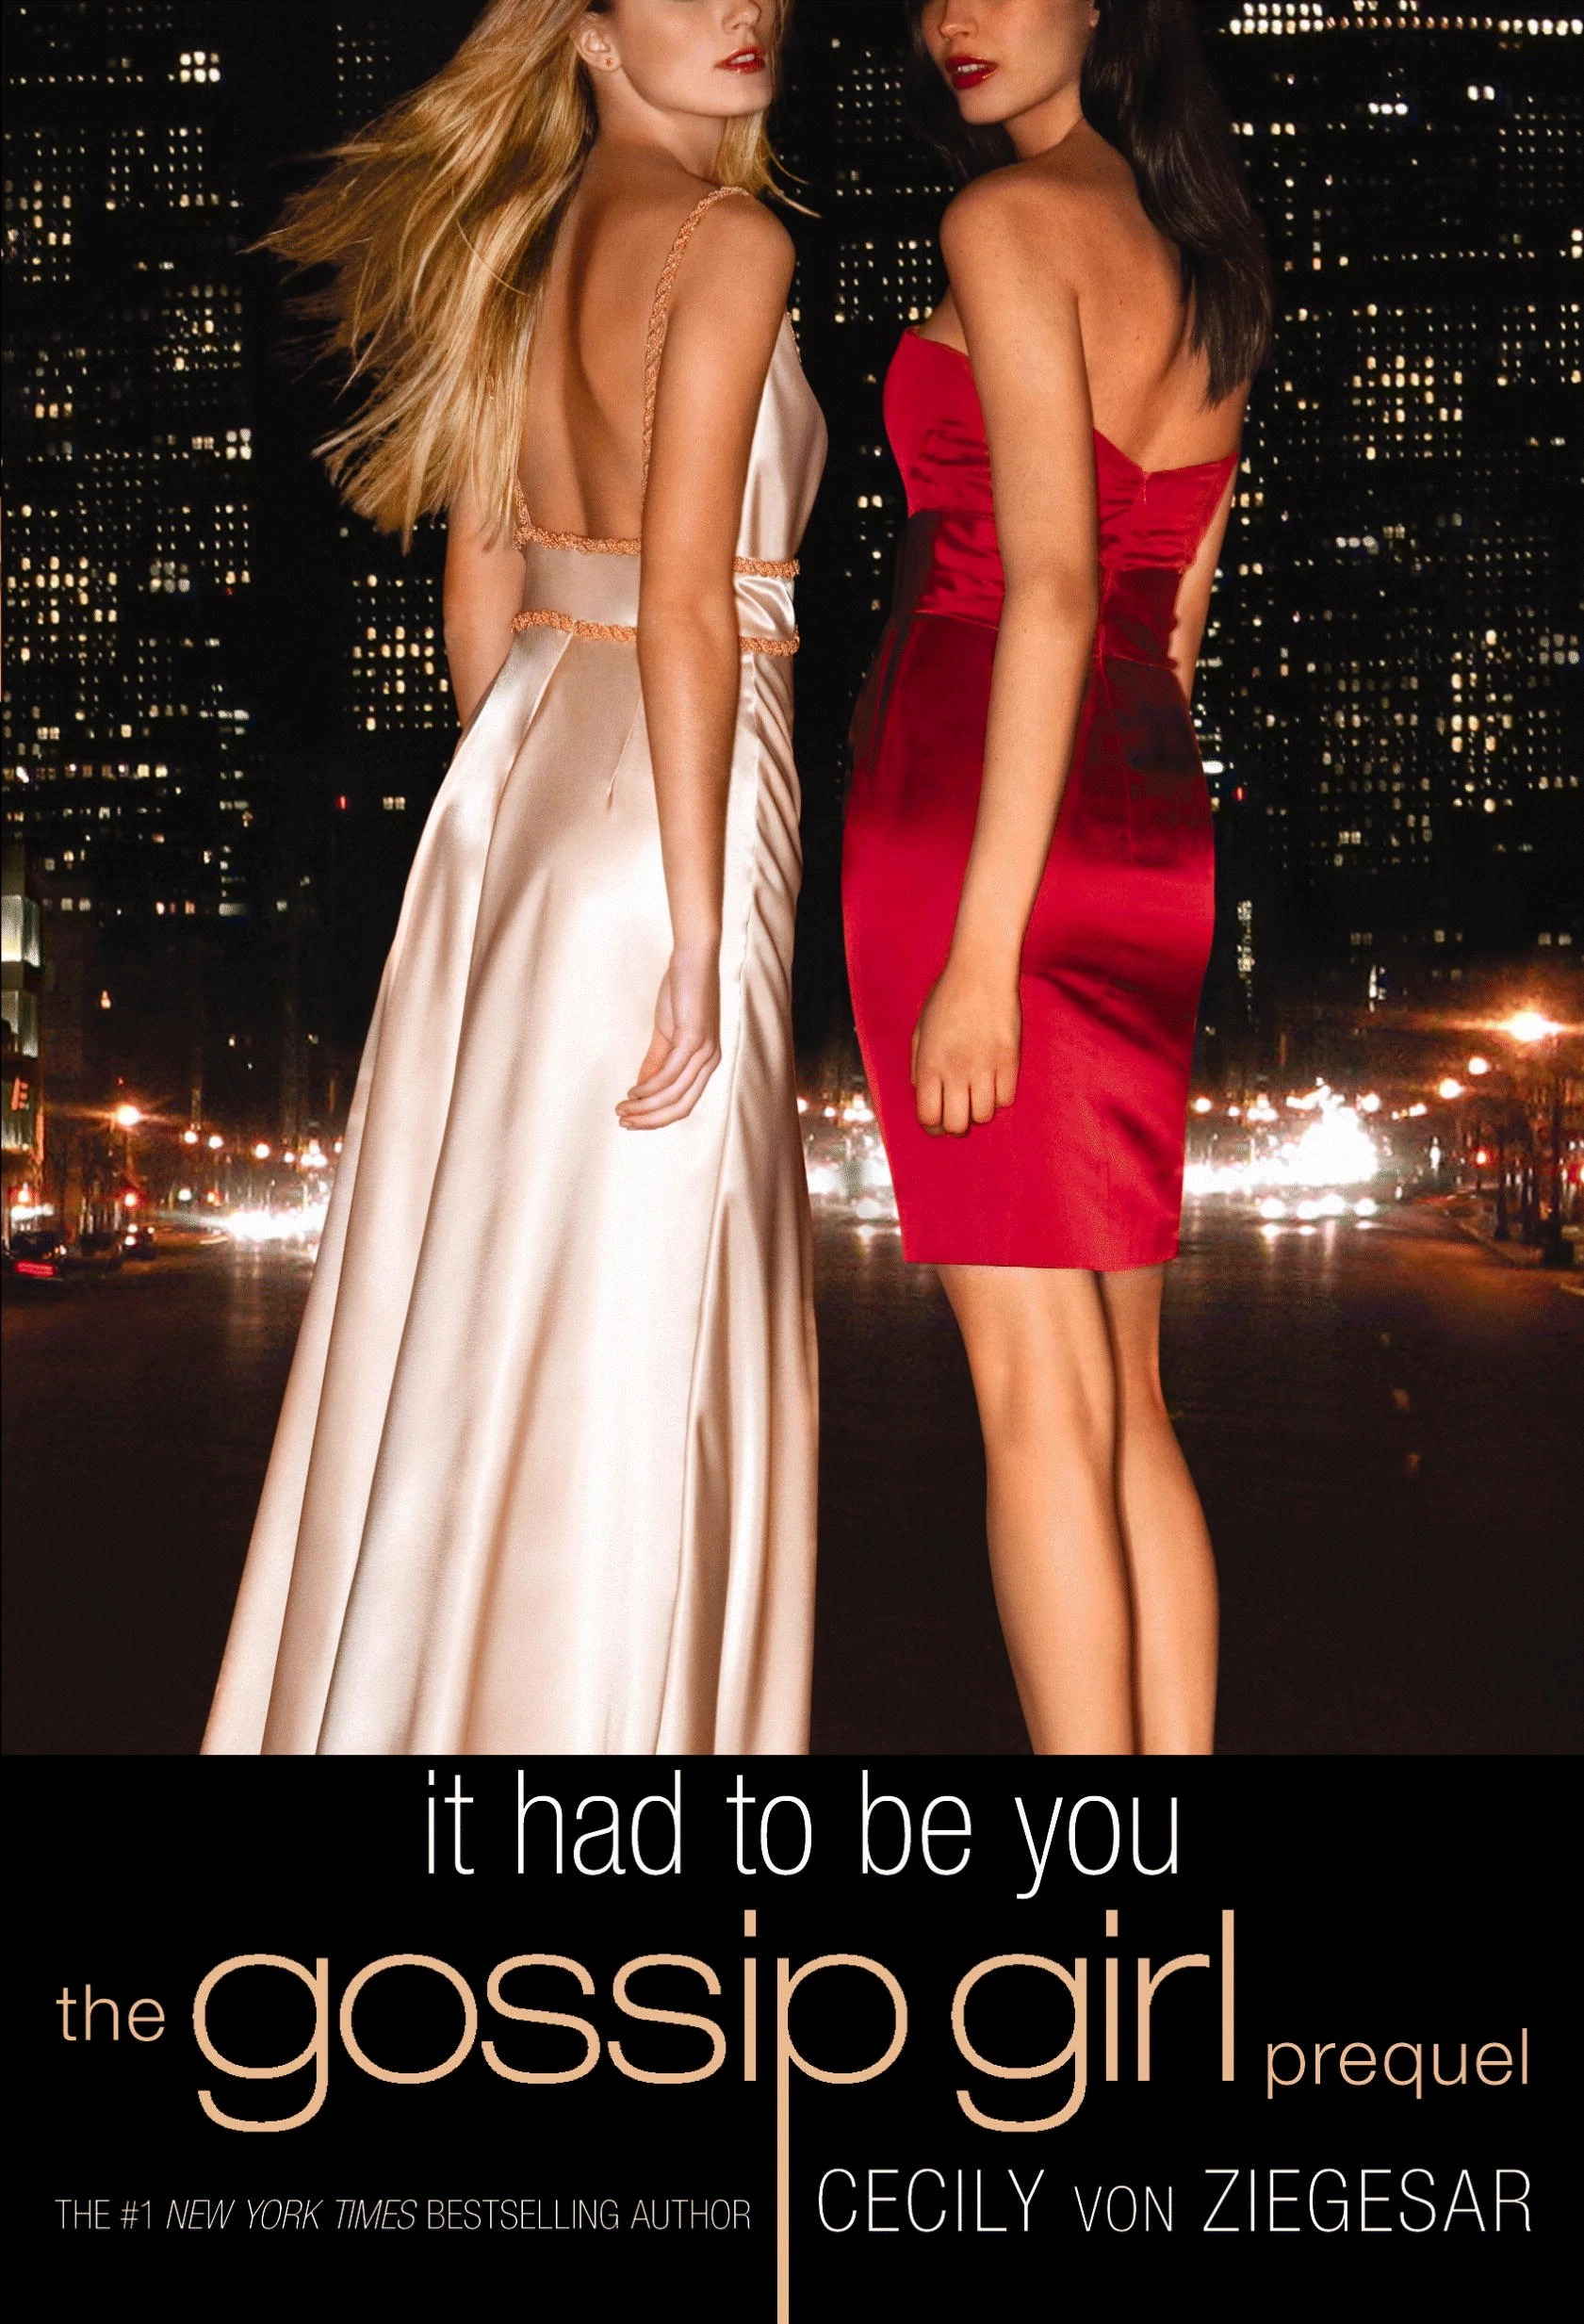 Gossip Girl Chuck And Blair Wallpaper It Had To Be You Gossip Girl Wiki Fandom Powered By Wikia